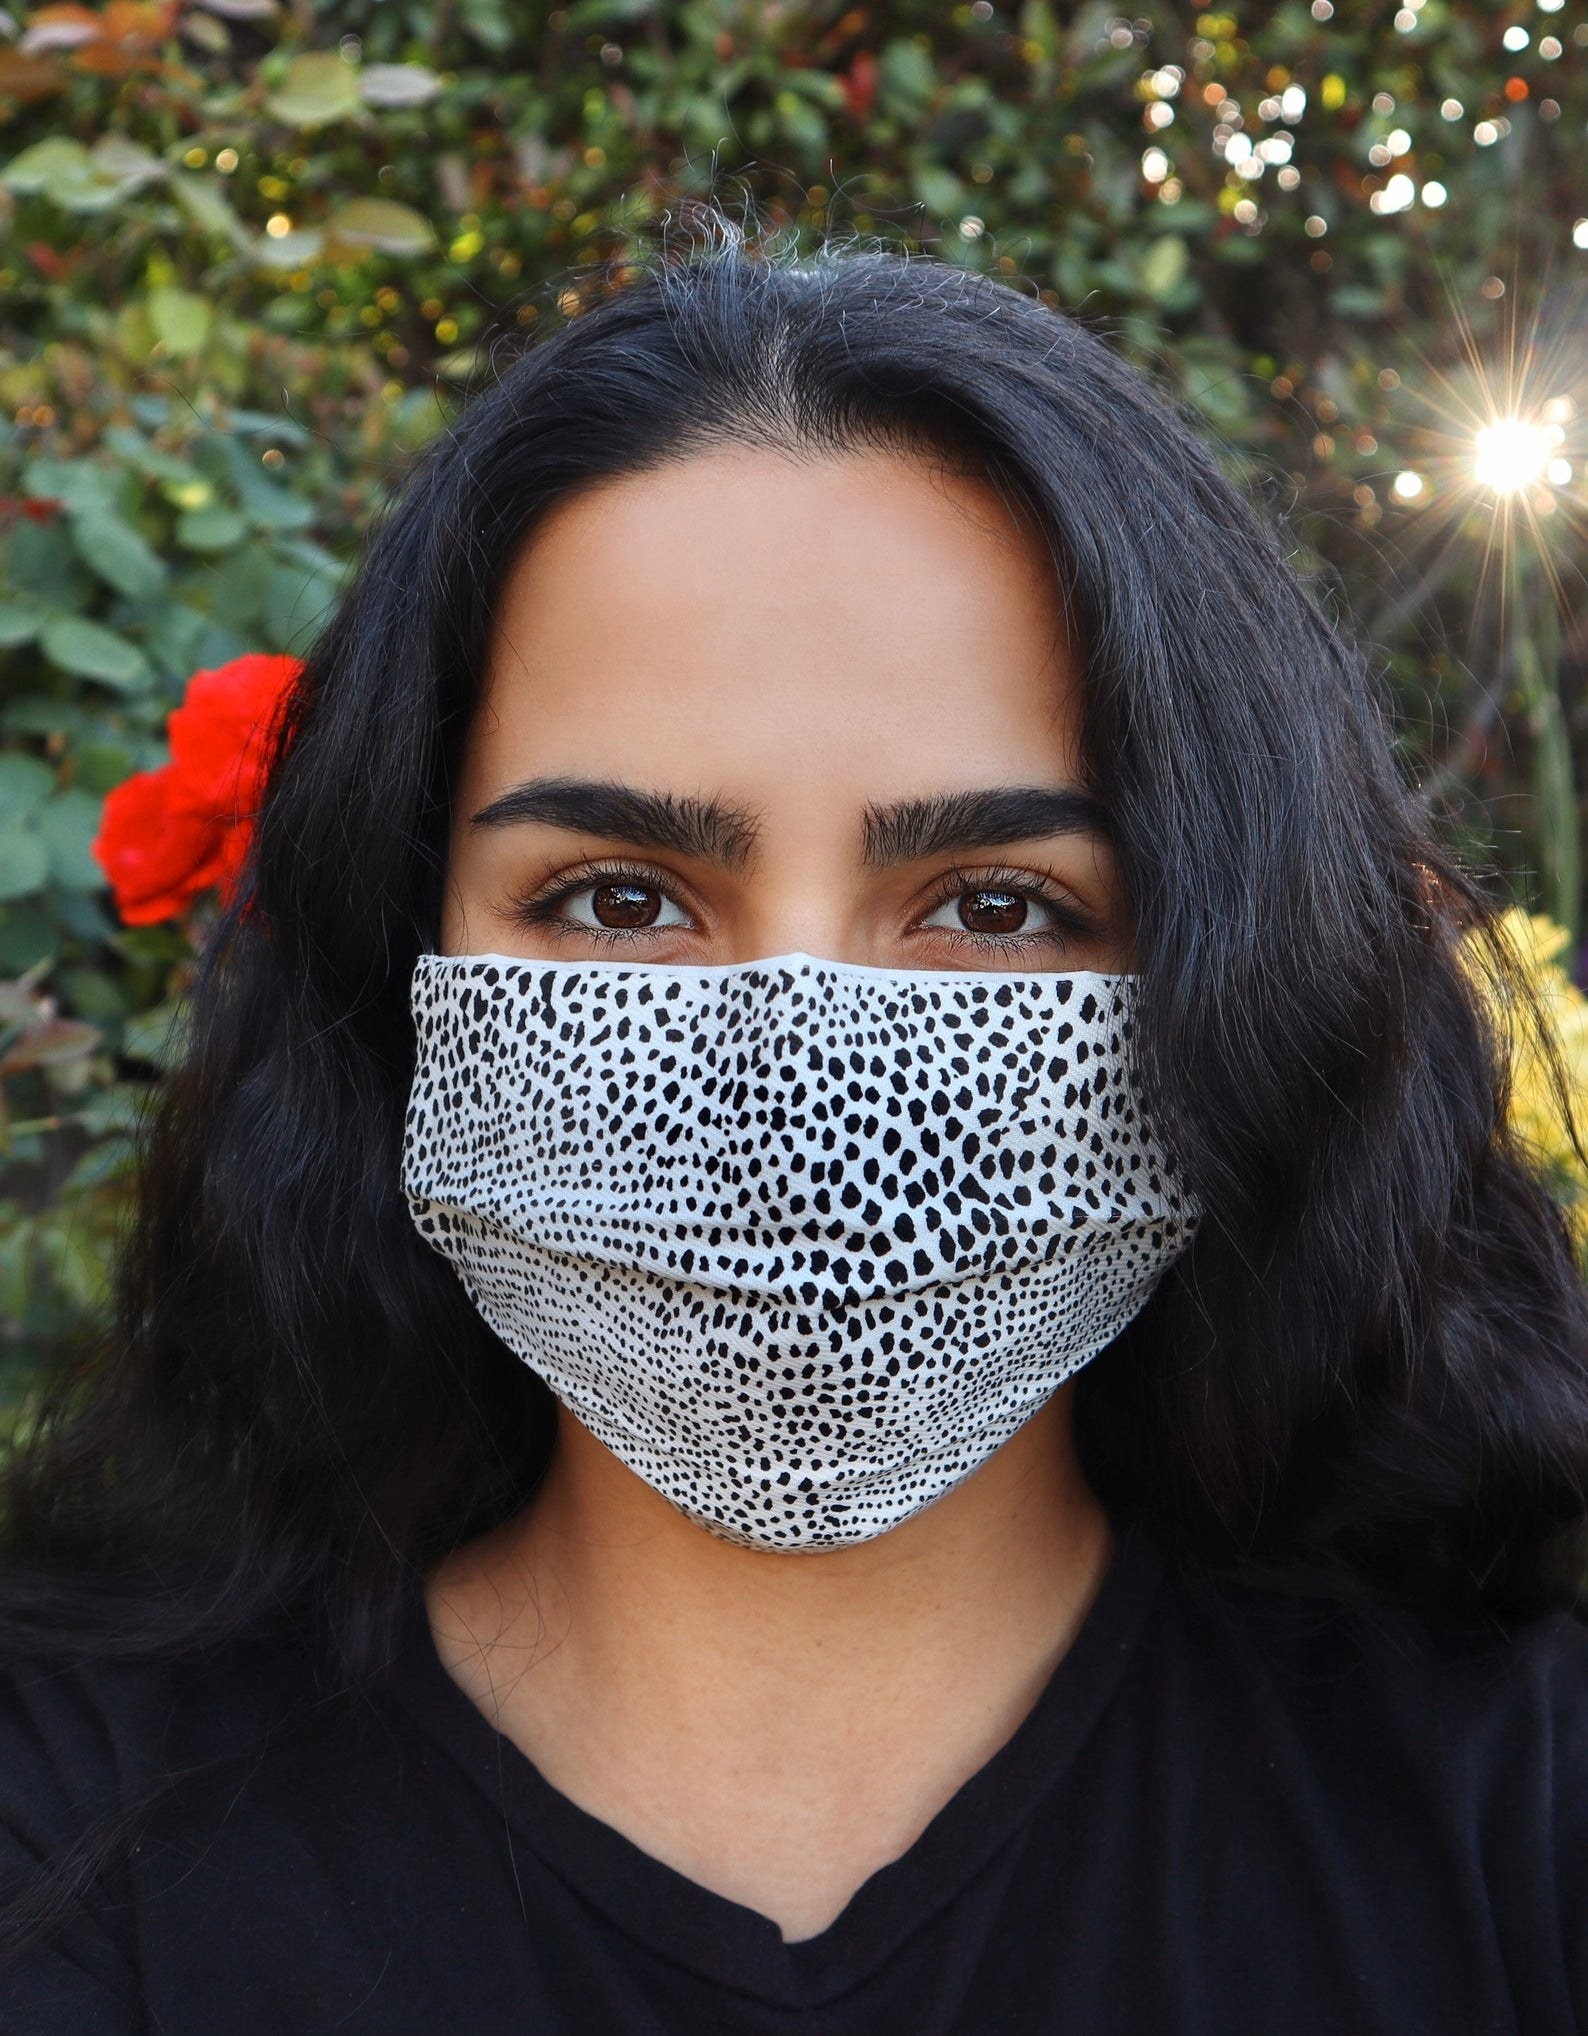 Model in white and black cheetah print face mask